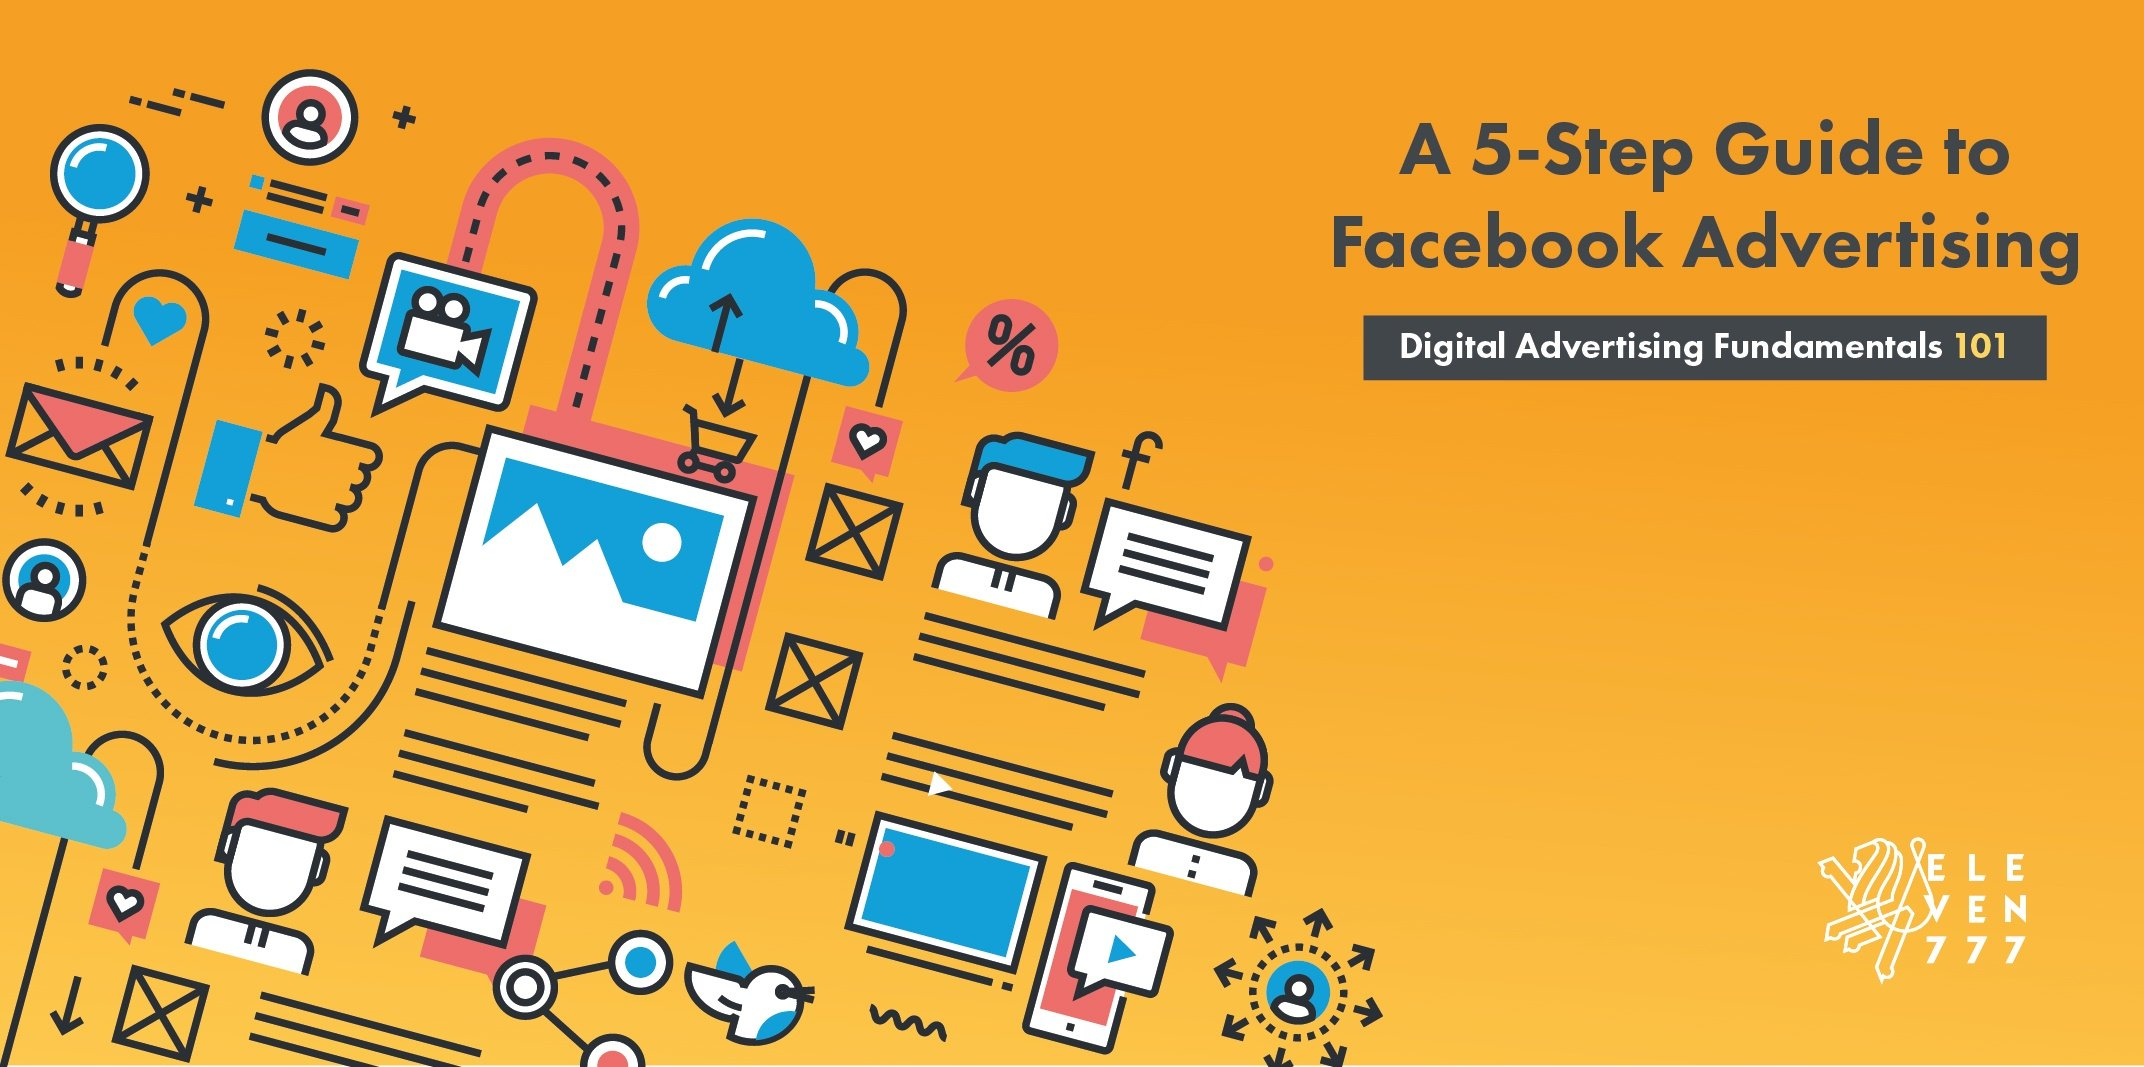 Digital Advertising 101- A 5-Step Guide to Facebook Advertising_02-01-2